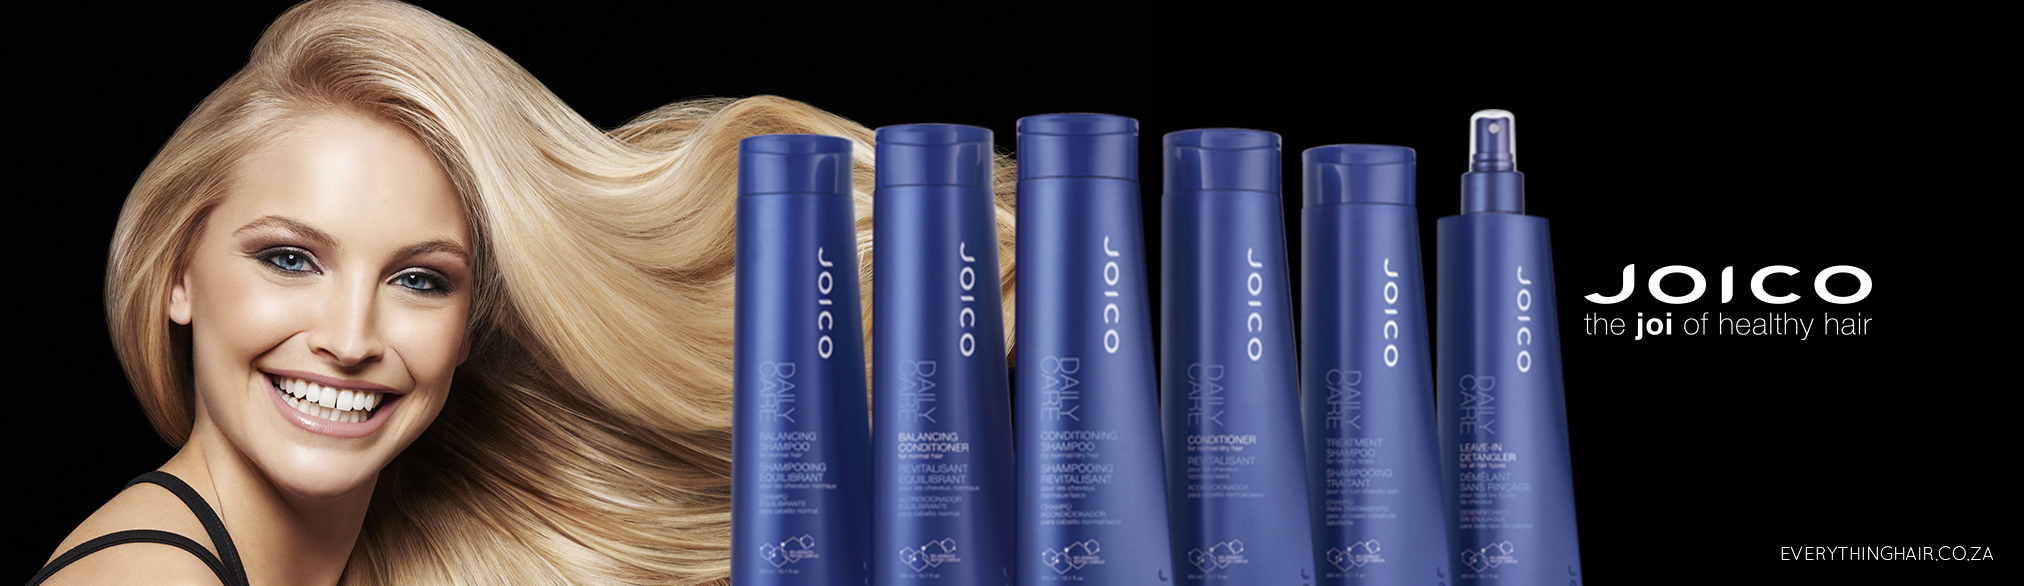 Joico Daily Care